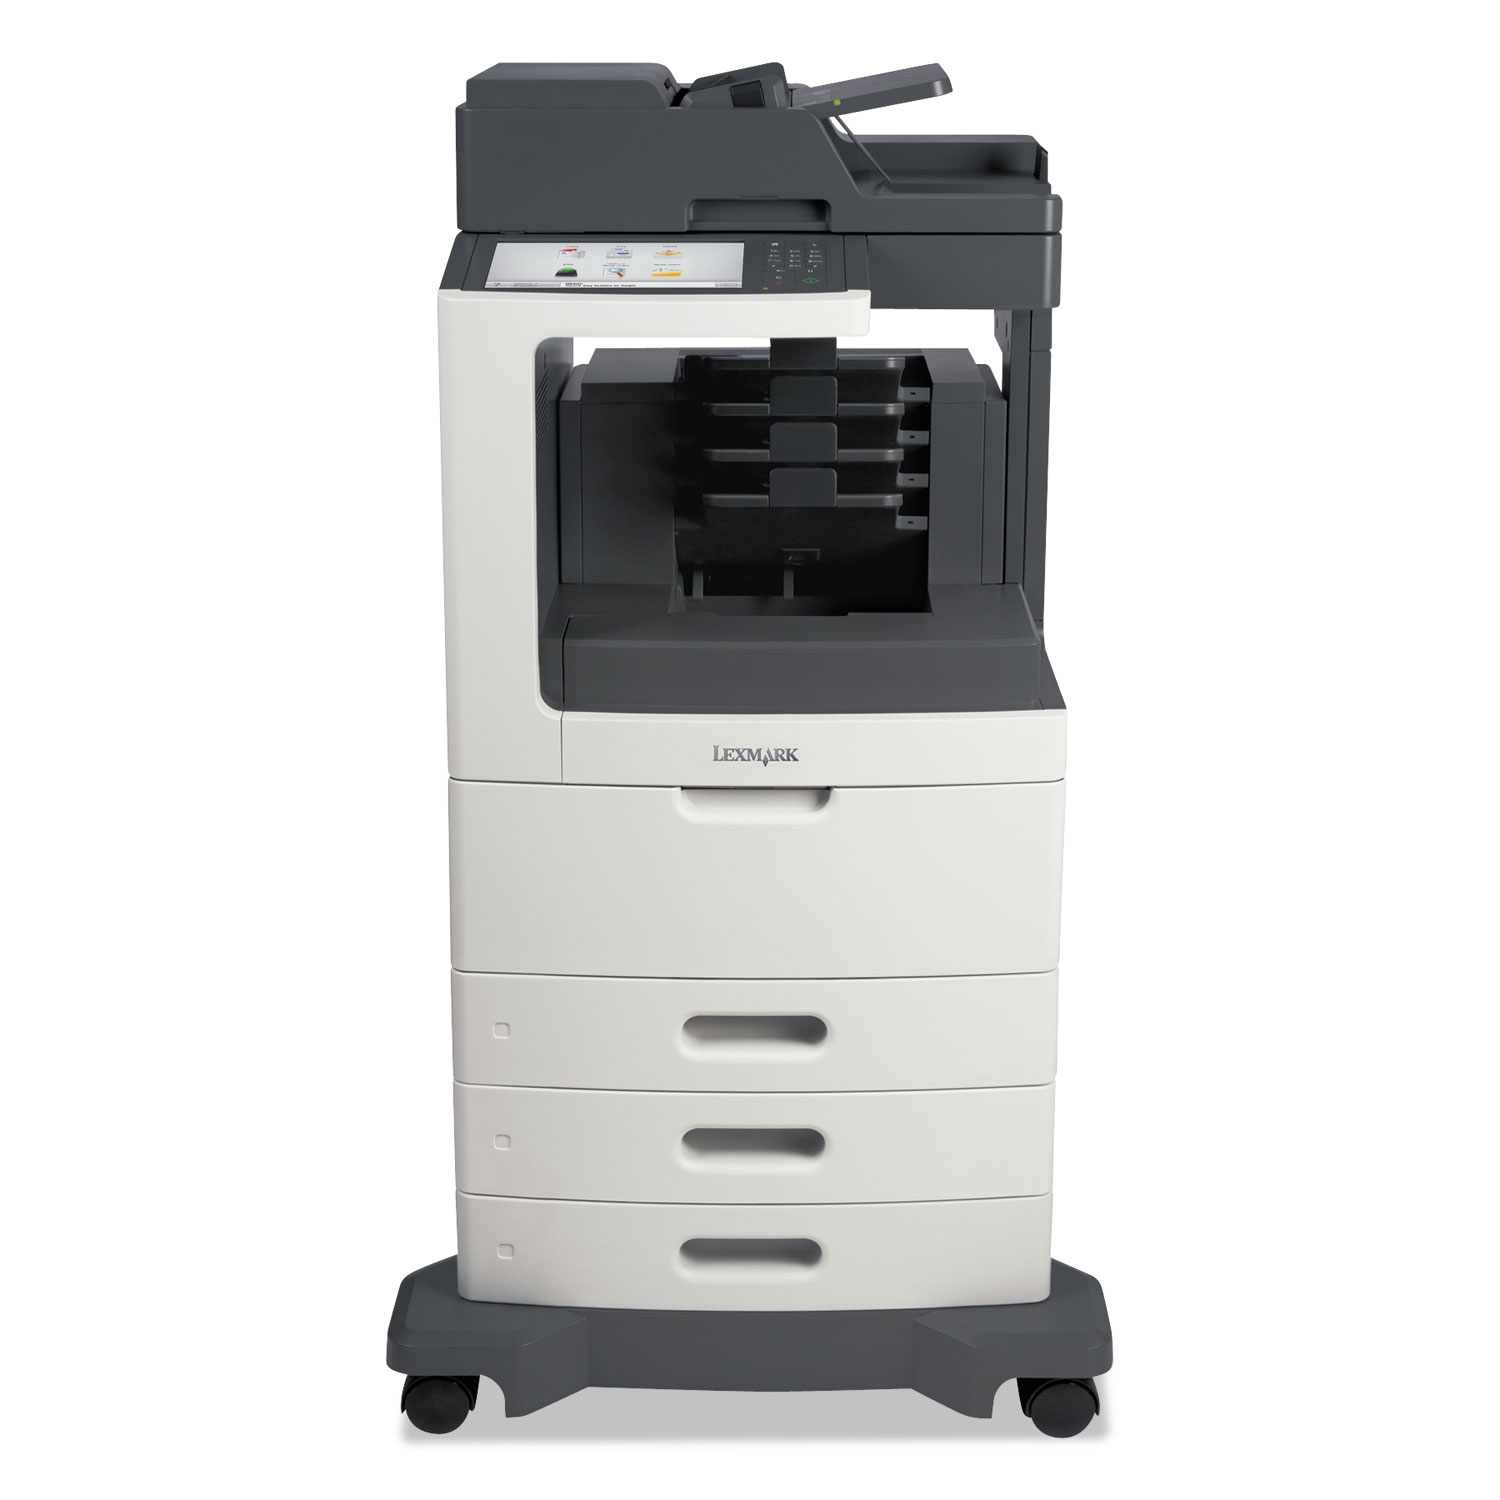 MX812dtme Multifunction Laser Printer, Copy/Fax/Print/Scan